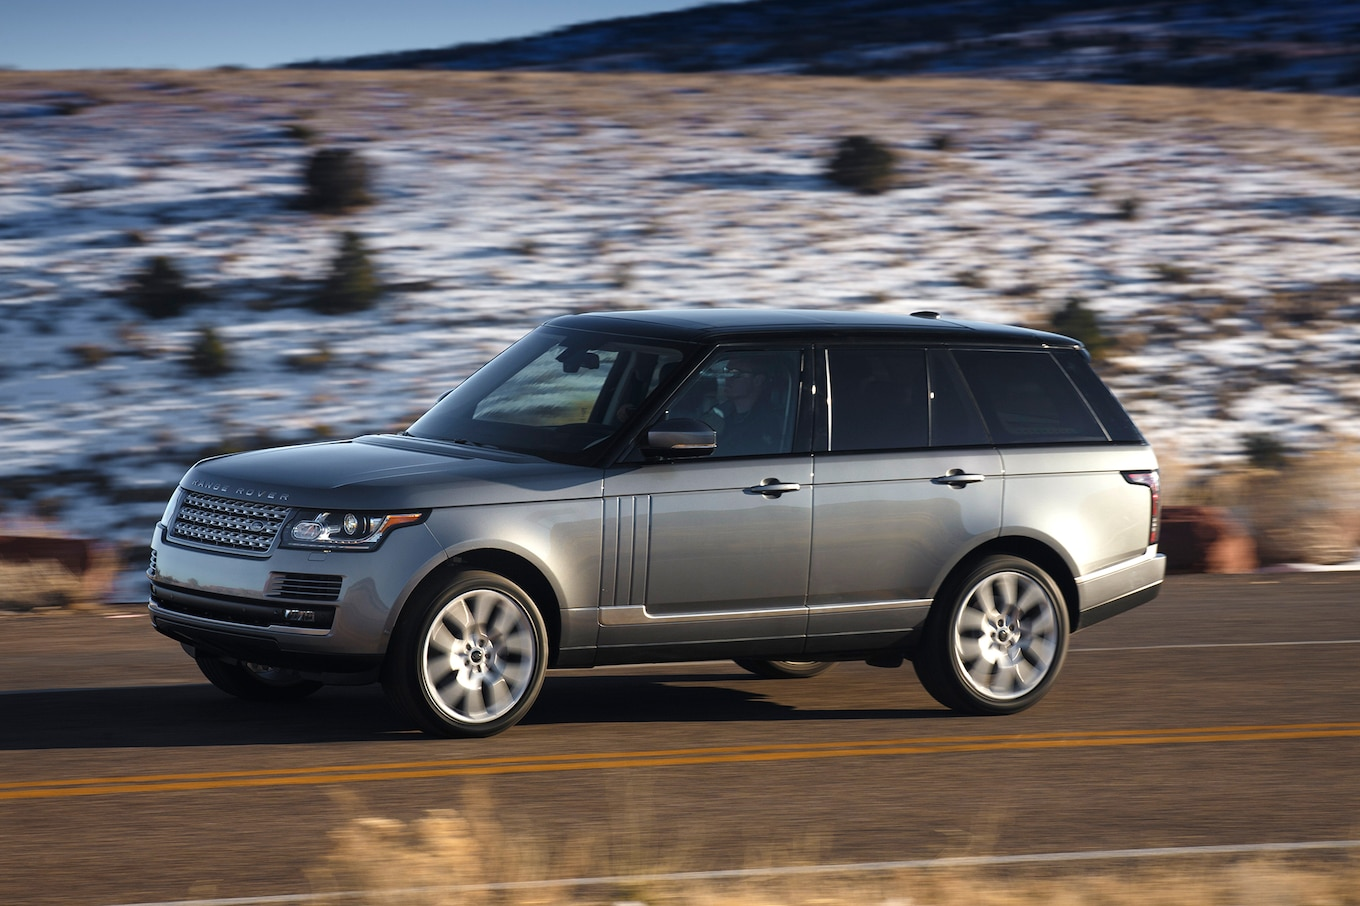 2013 Land Rover Range Rover Reviews And Rating  Motor Trend